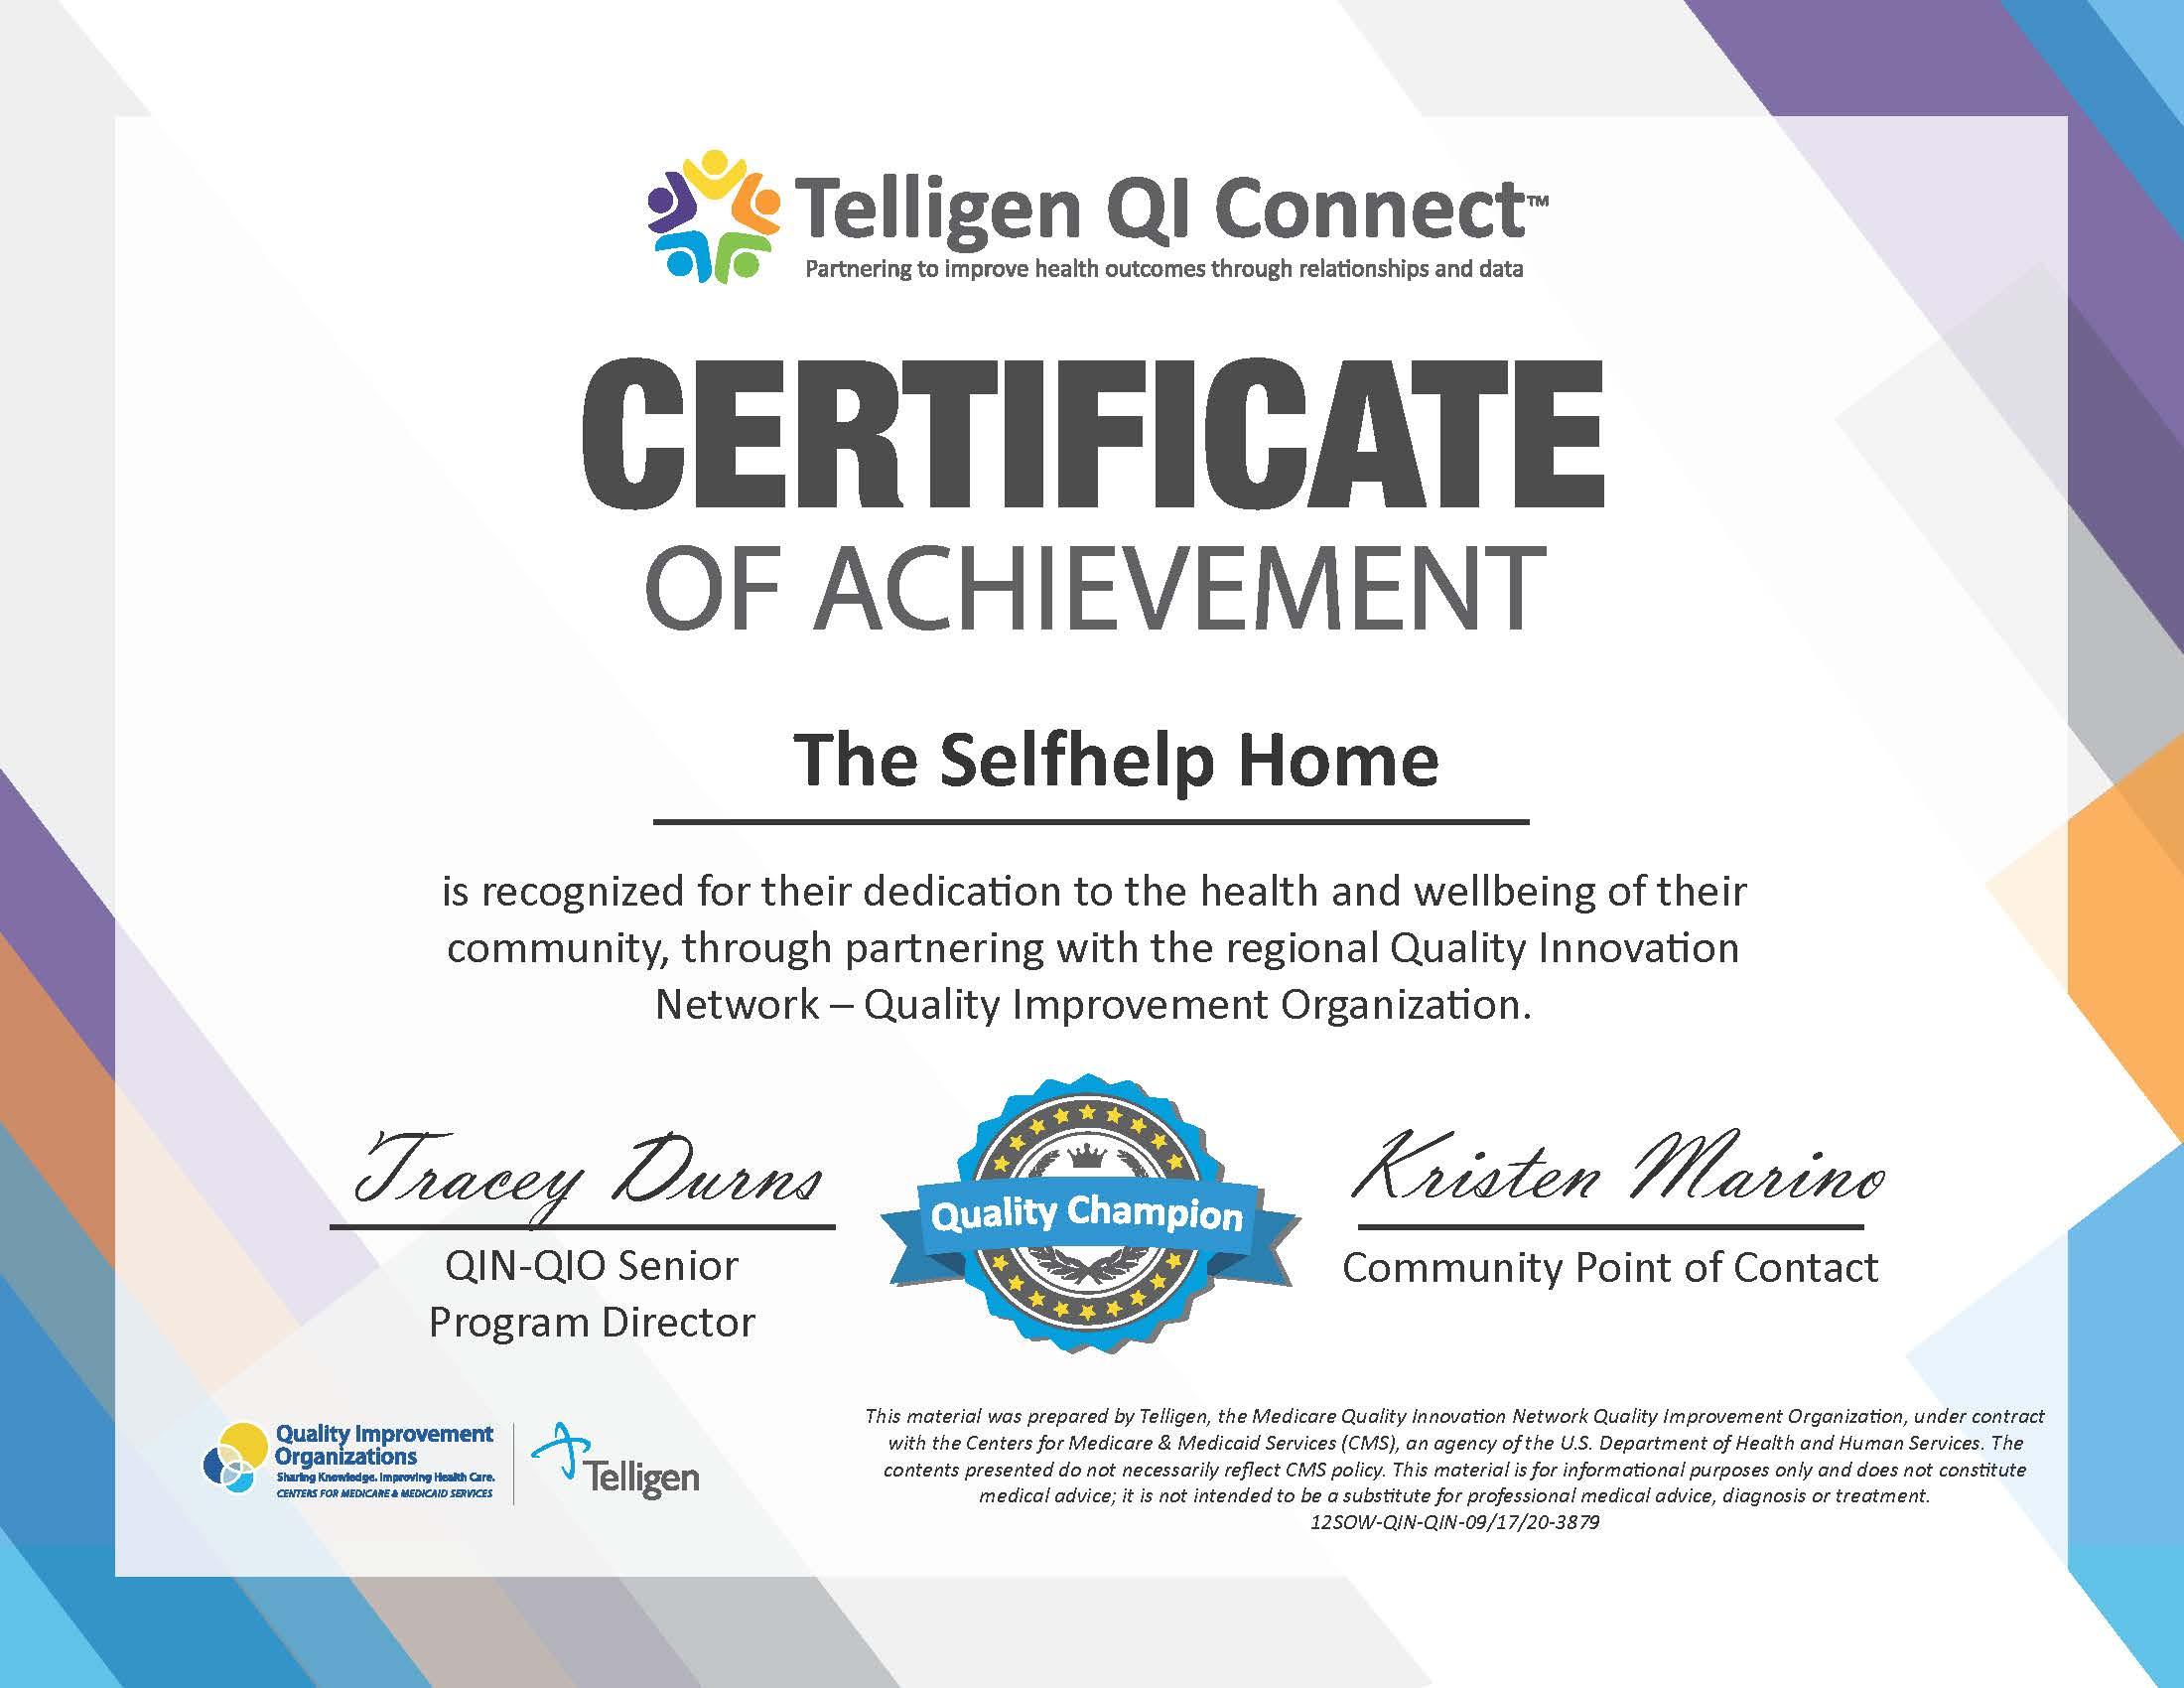 The Selfhelp Home Community Honored as a Statewide Champion - The Selfhelp Home